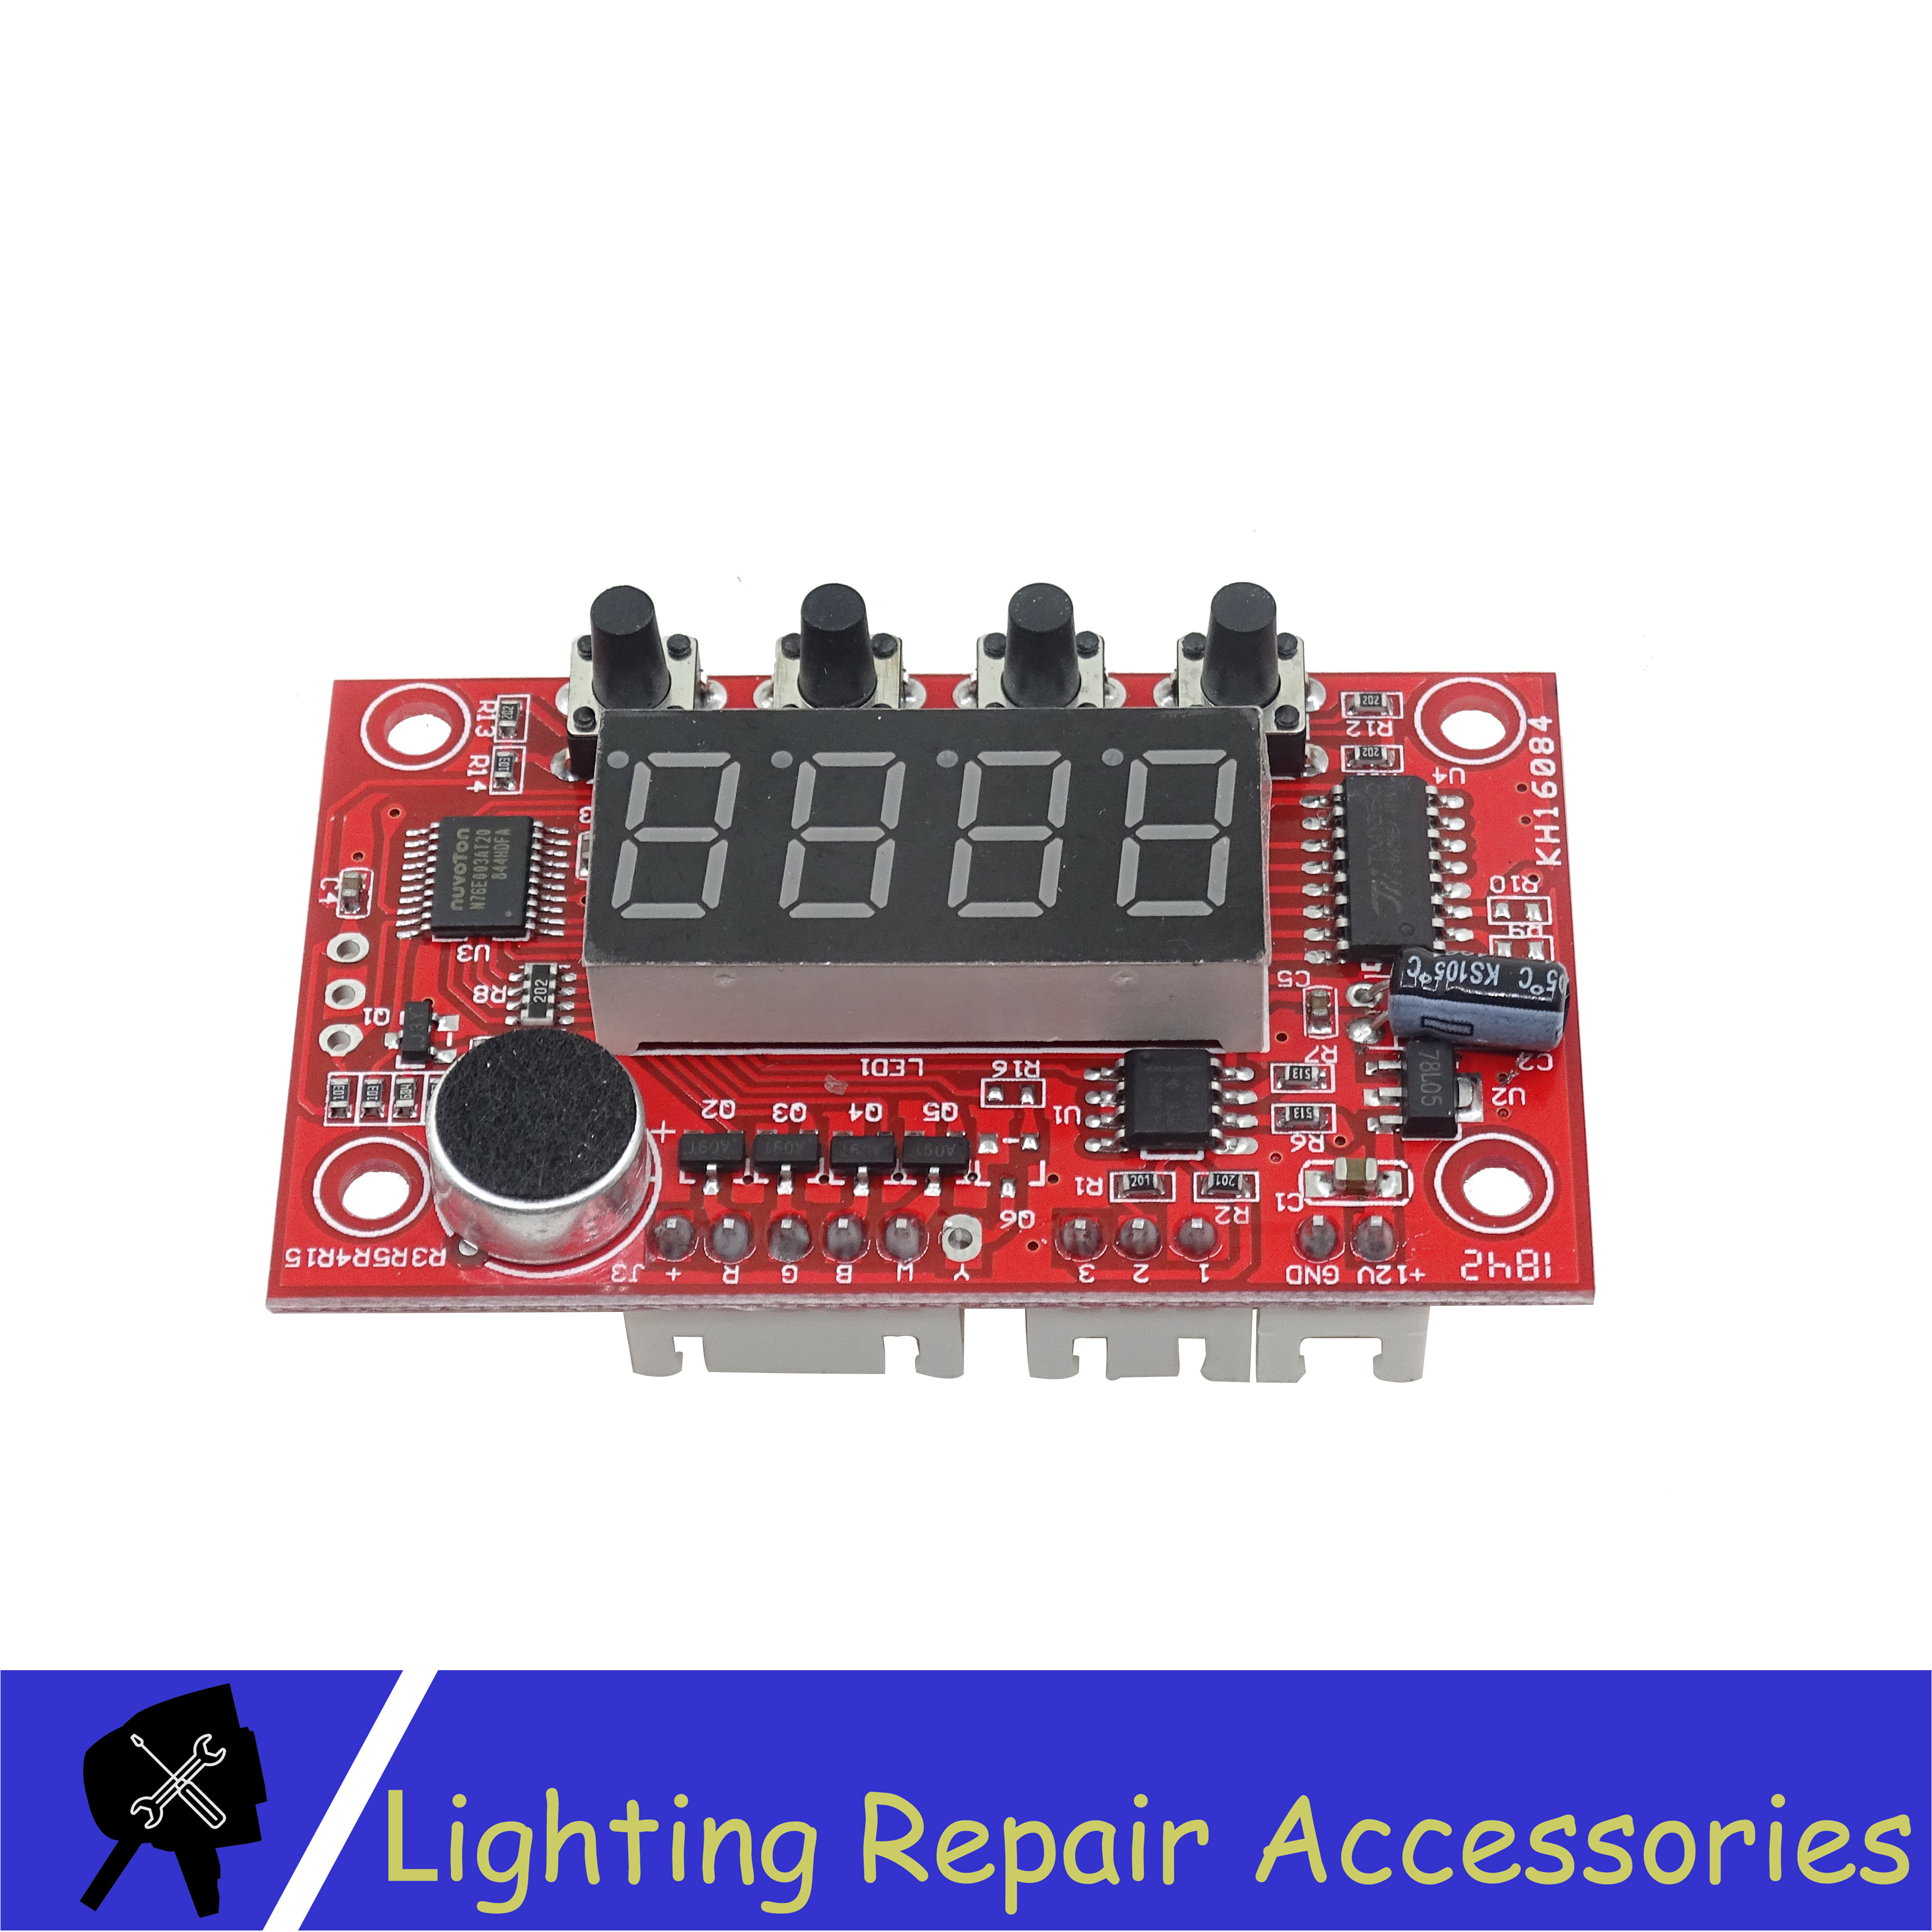 Mini Led Par Light Mother Board Use For 12x3w RGBW 12x3w 3in1 RGB 3in1 Mini Cob 3x10w 5x10w Repair Spare Parts